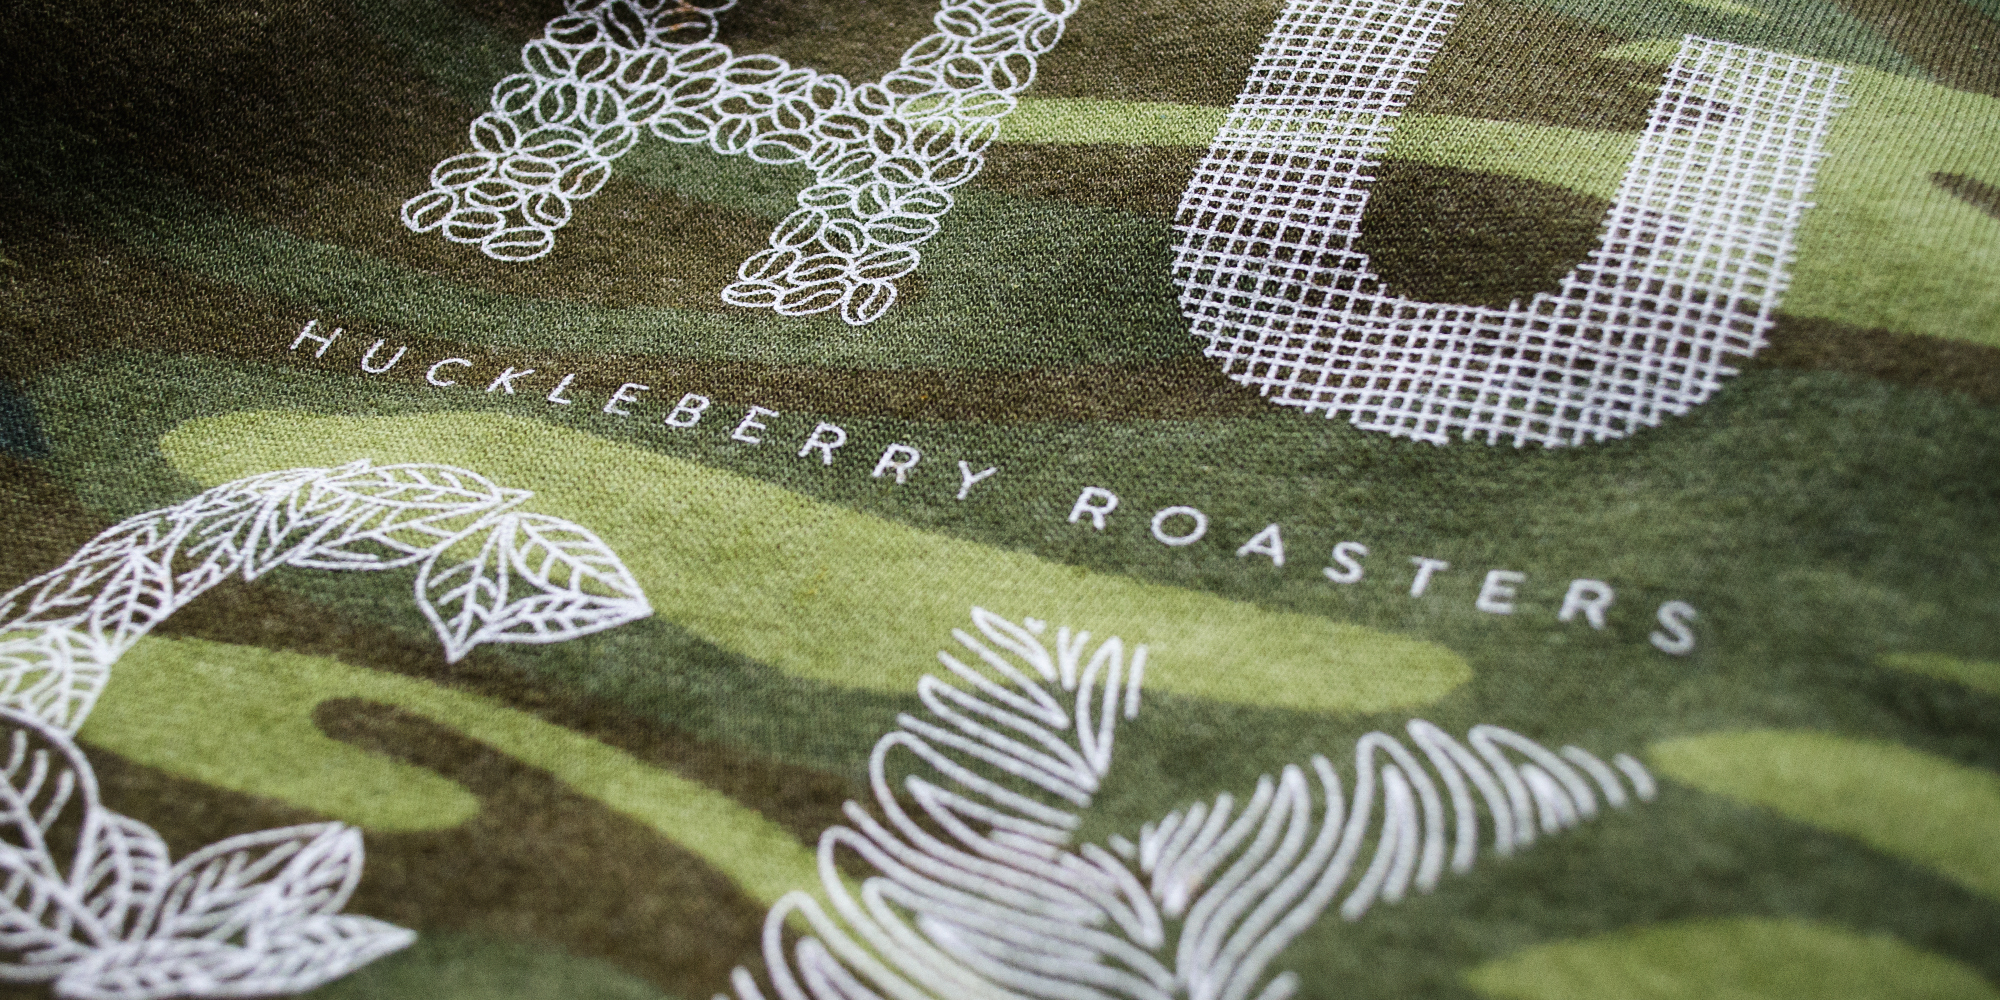 huckleberry-roasters-design-logo-illustration-typography-camo-closeup.jpg